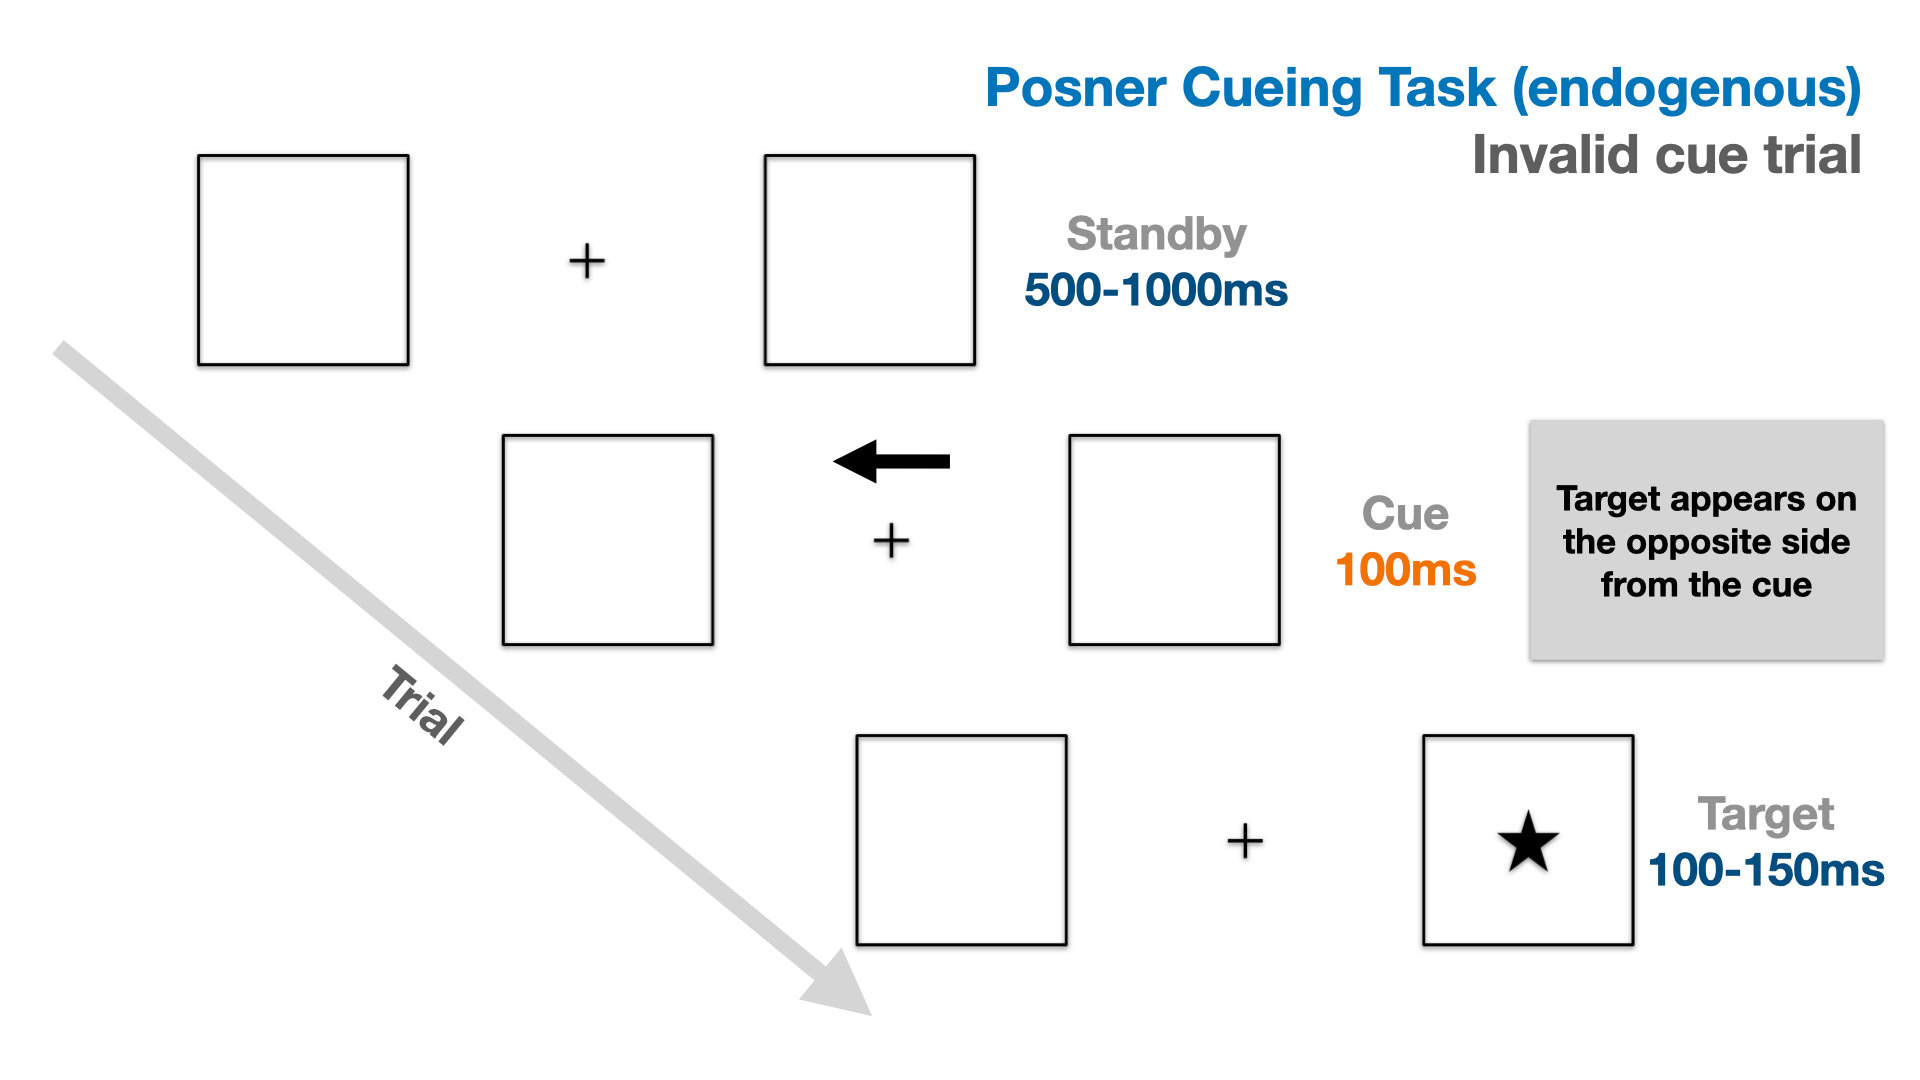 Illustration of the trial flow in an endogenous version of the Posner cueing task